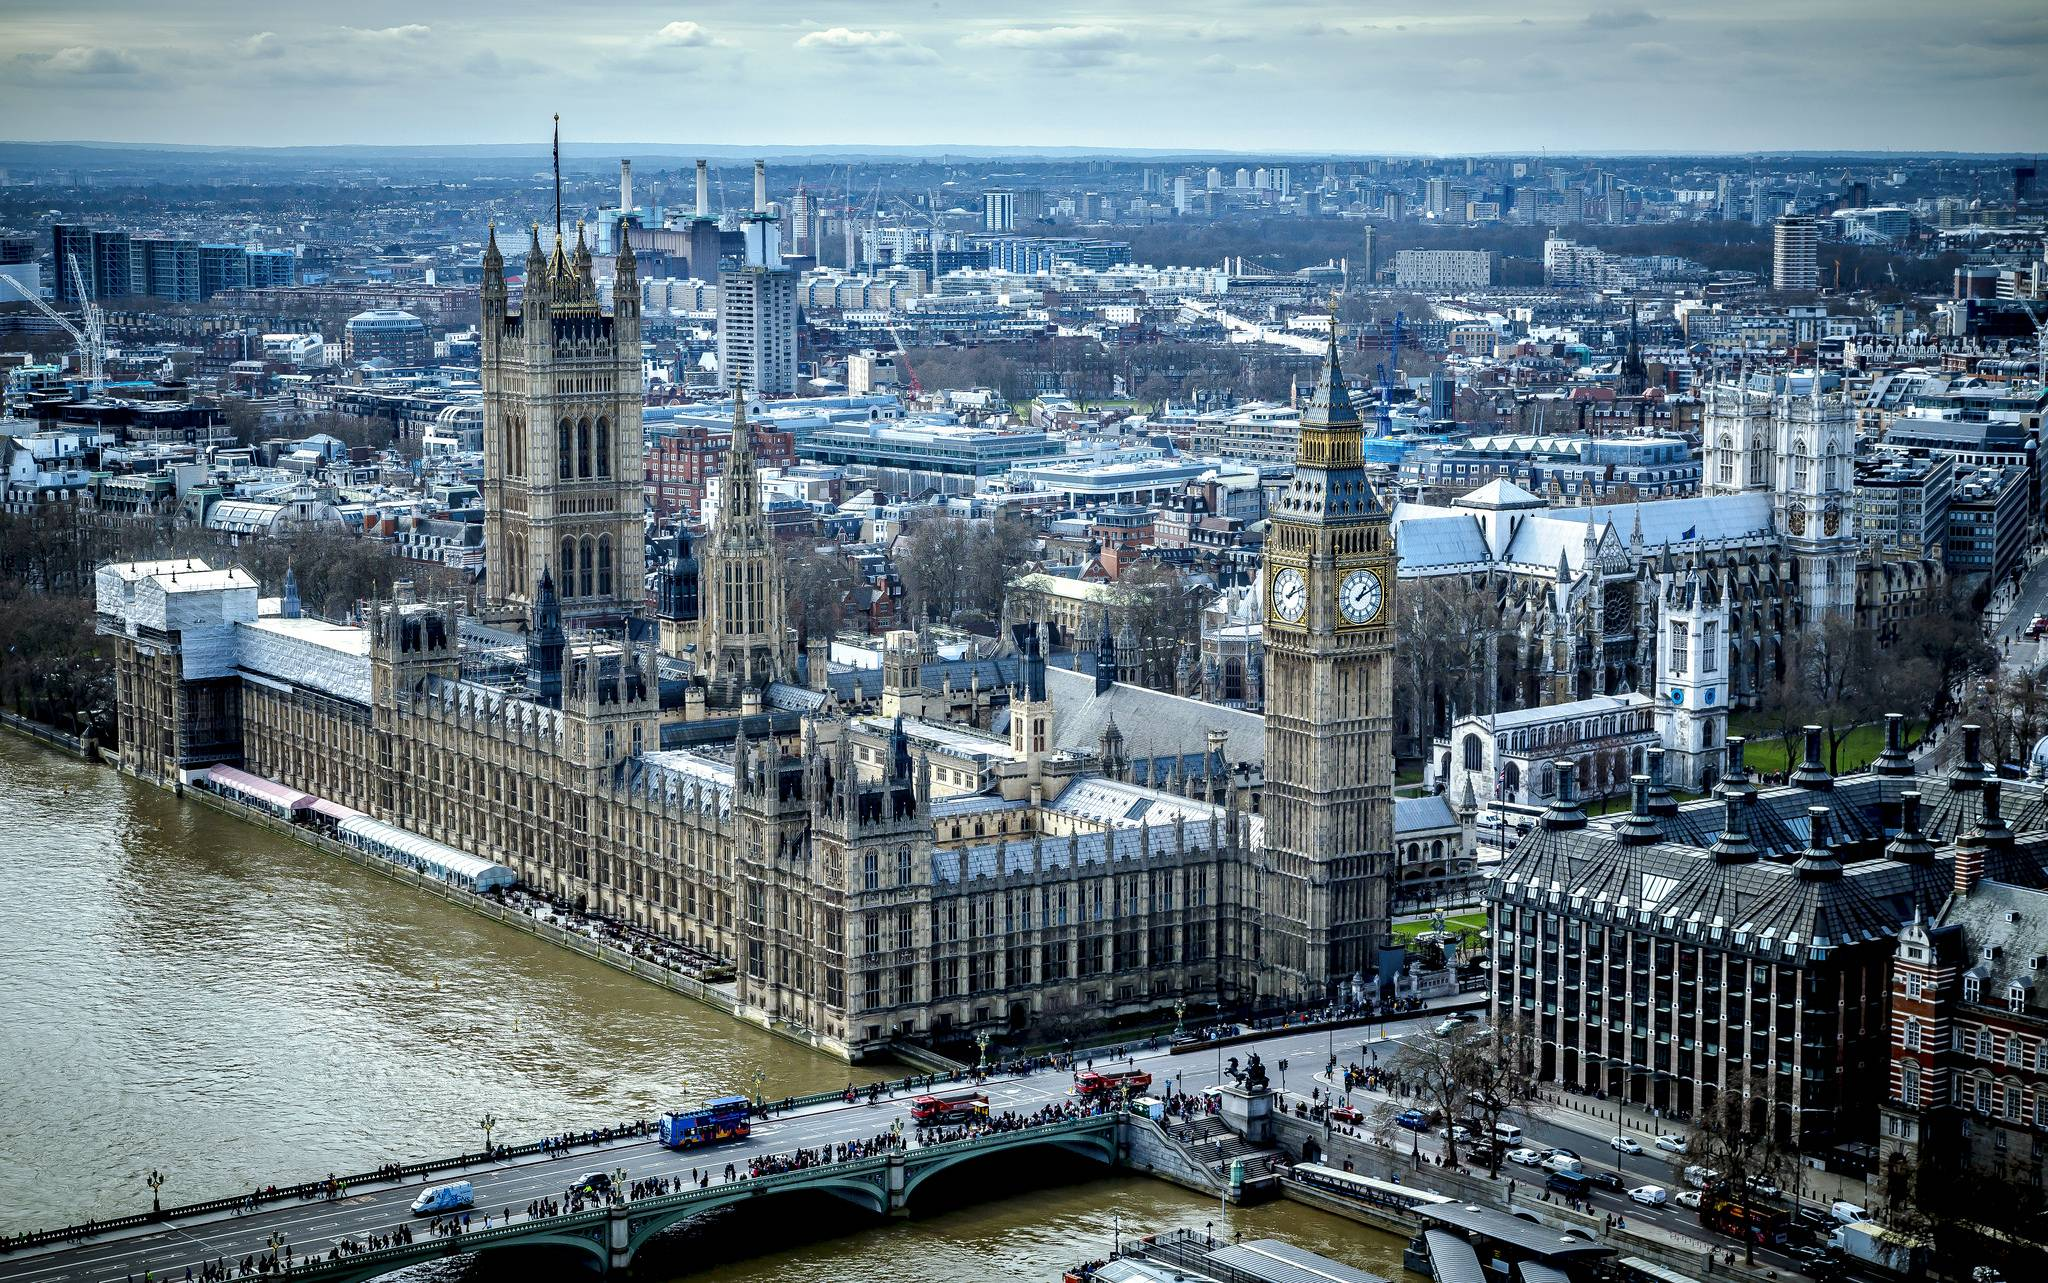 обои London, Palace of Westminster, Лондон, река Темза картинки фото